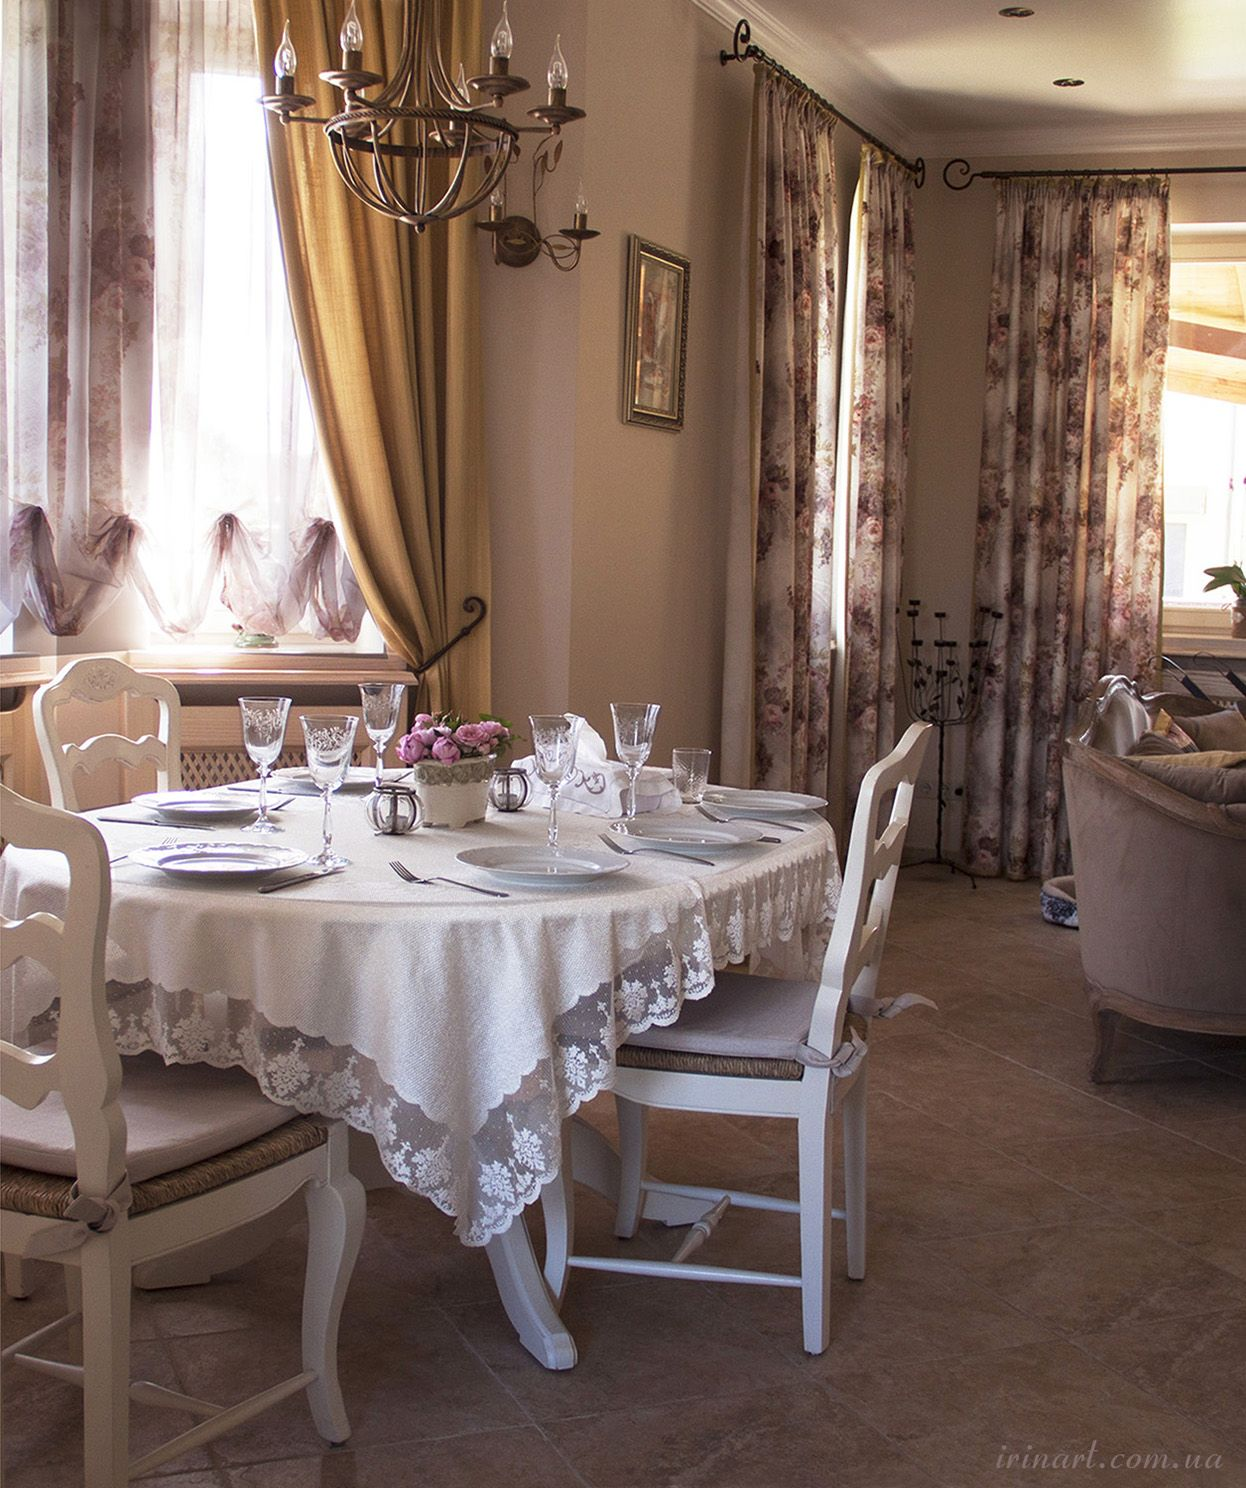 Provence decorating style in the dinning room